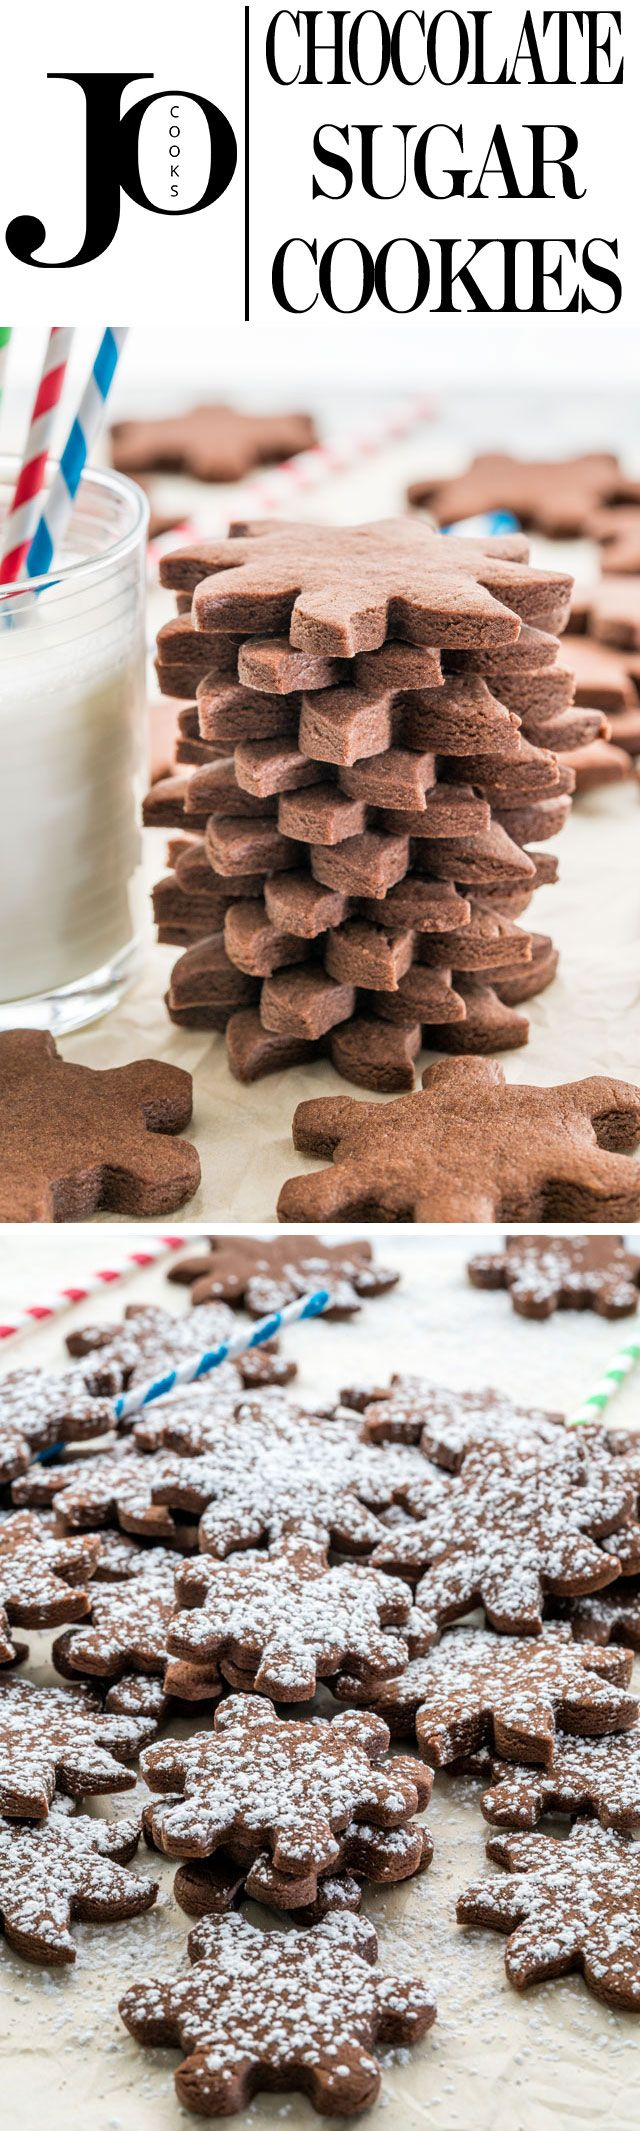 These Chocolate Sugar Cookies are so simple to make and melt in your mouth delicious! They go perfect with a good cup of coffee or tea and are a great holiday cookie!